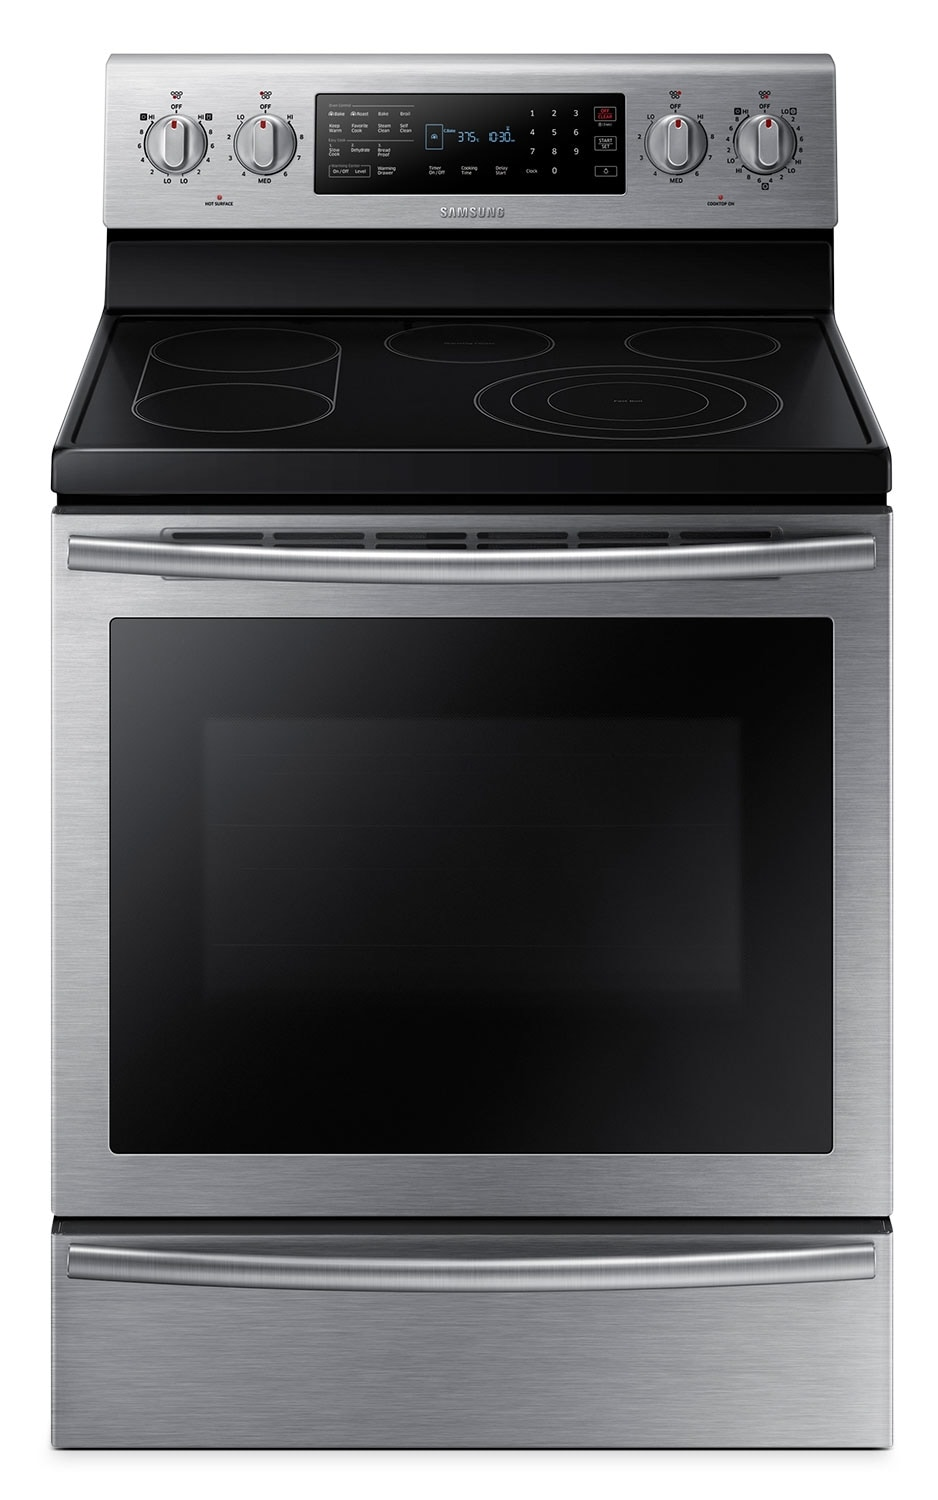 Samsung Stainless Steel Freestanding Electric Convection Range (5.9 Cu. Ft.) - NE59J7651WS/AC